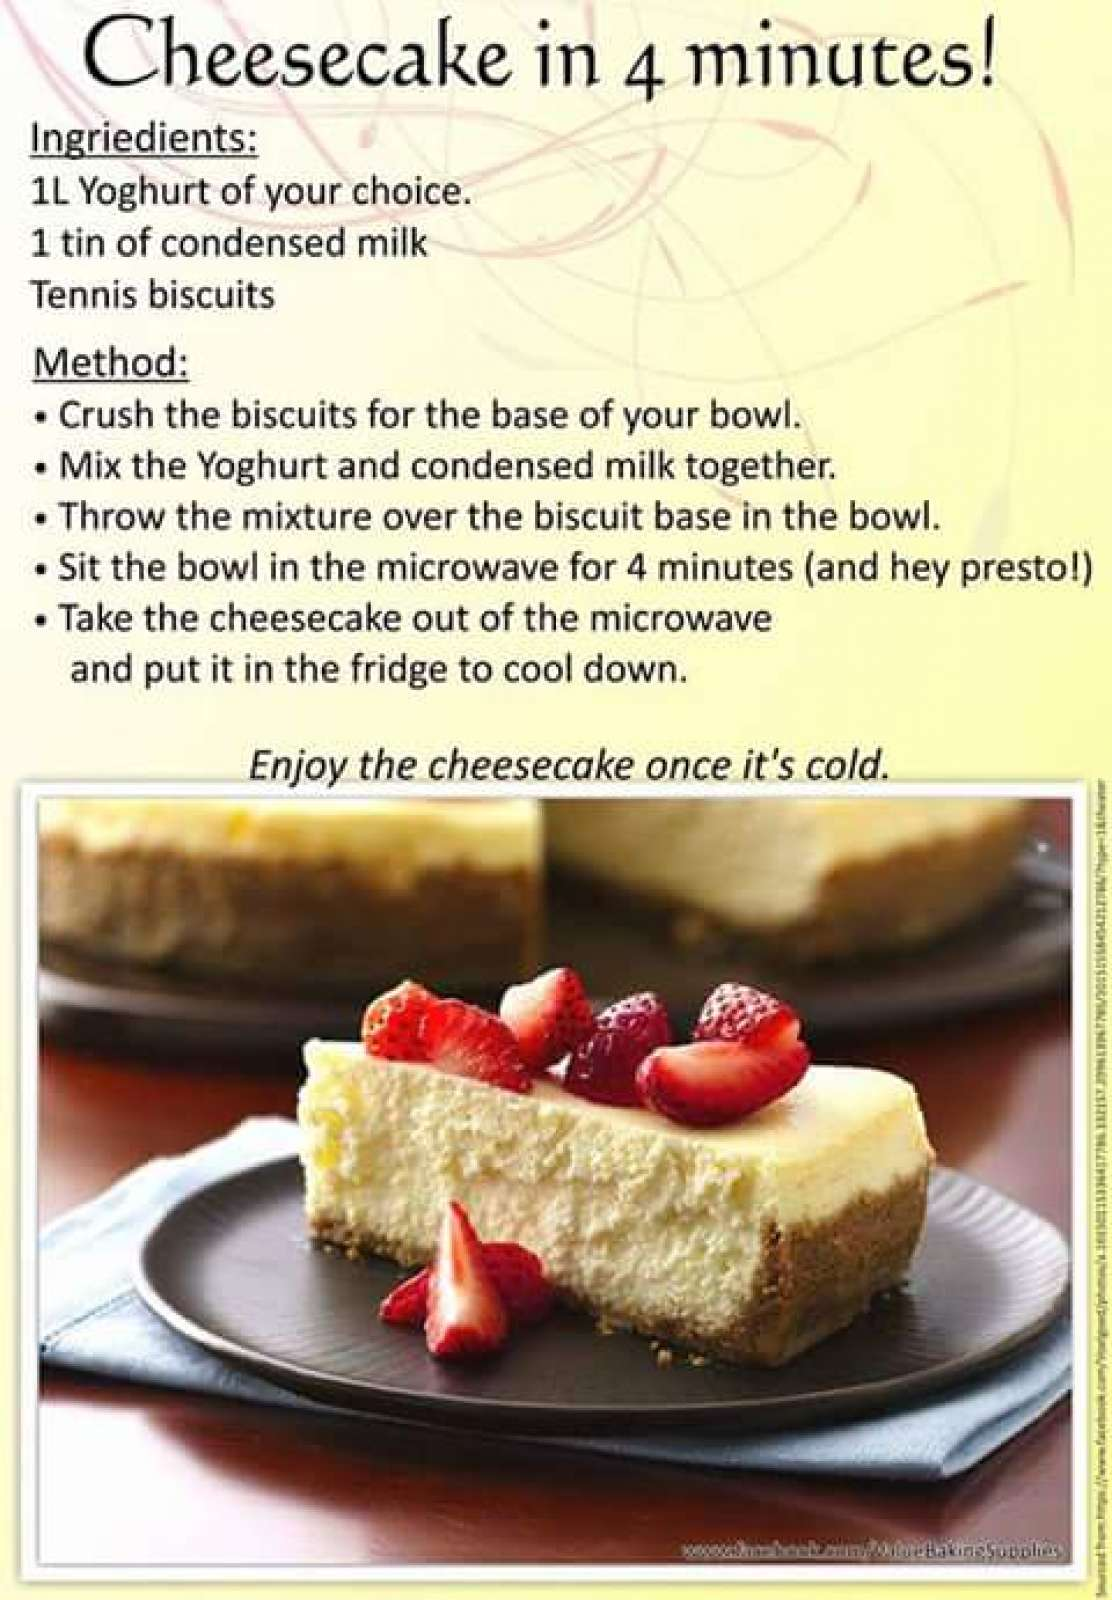 Cake Recipe Using Microwave Oven